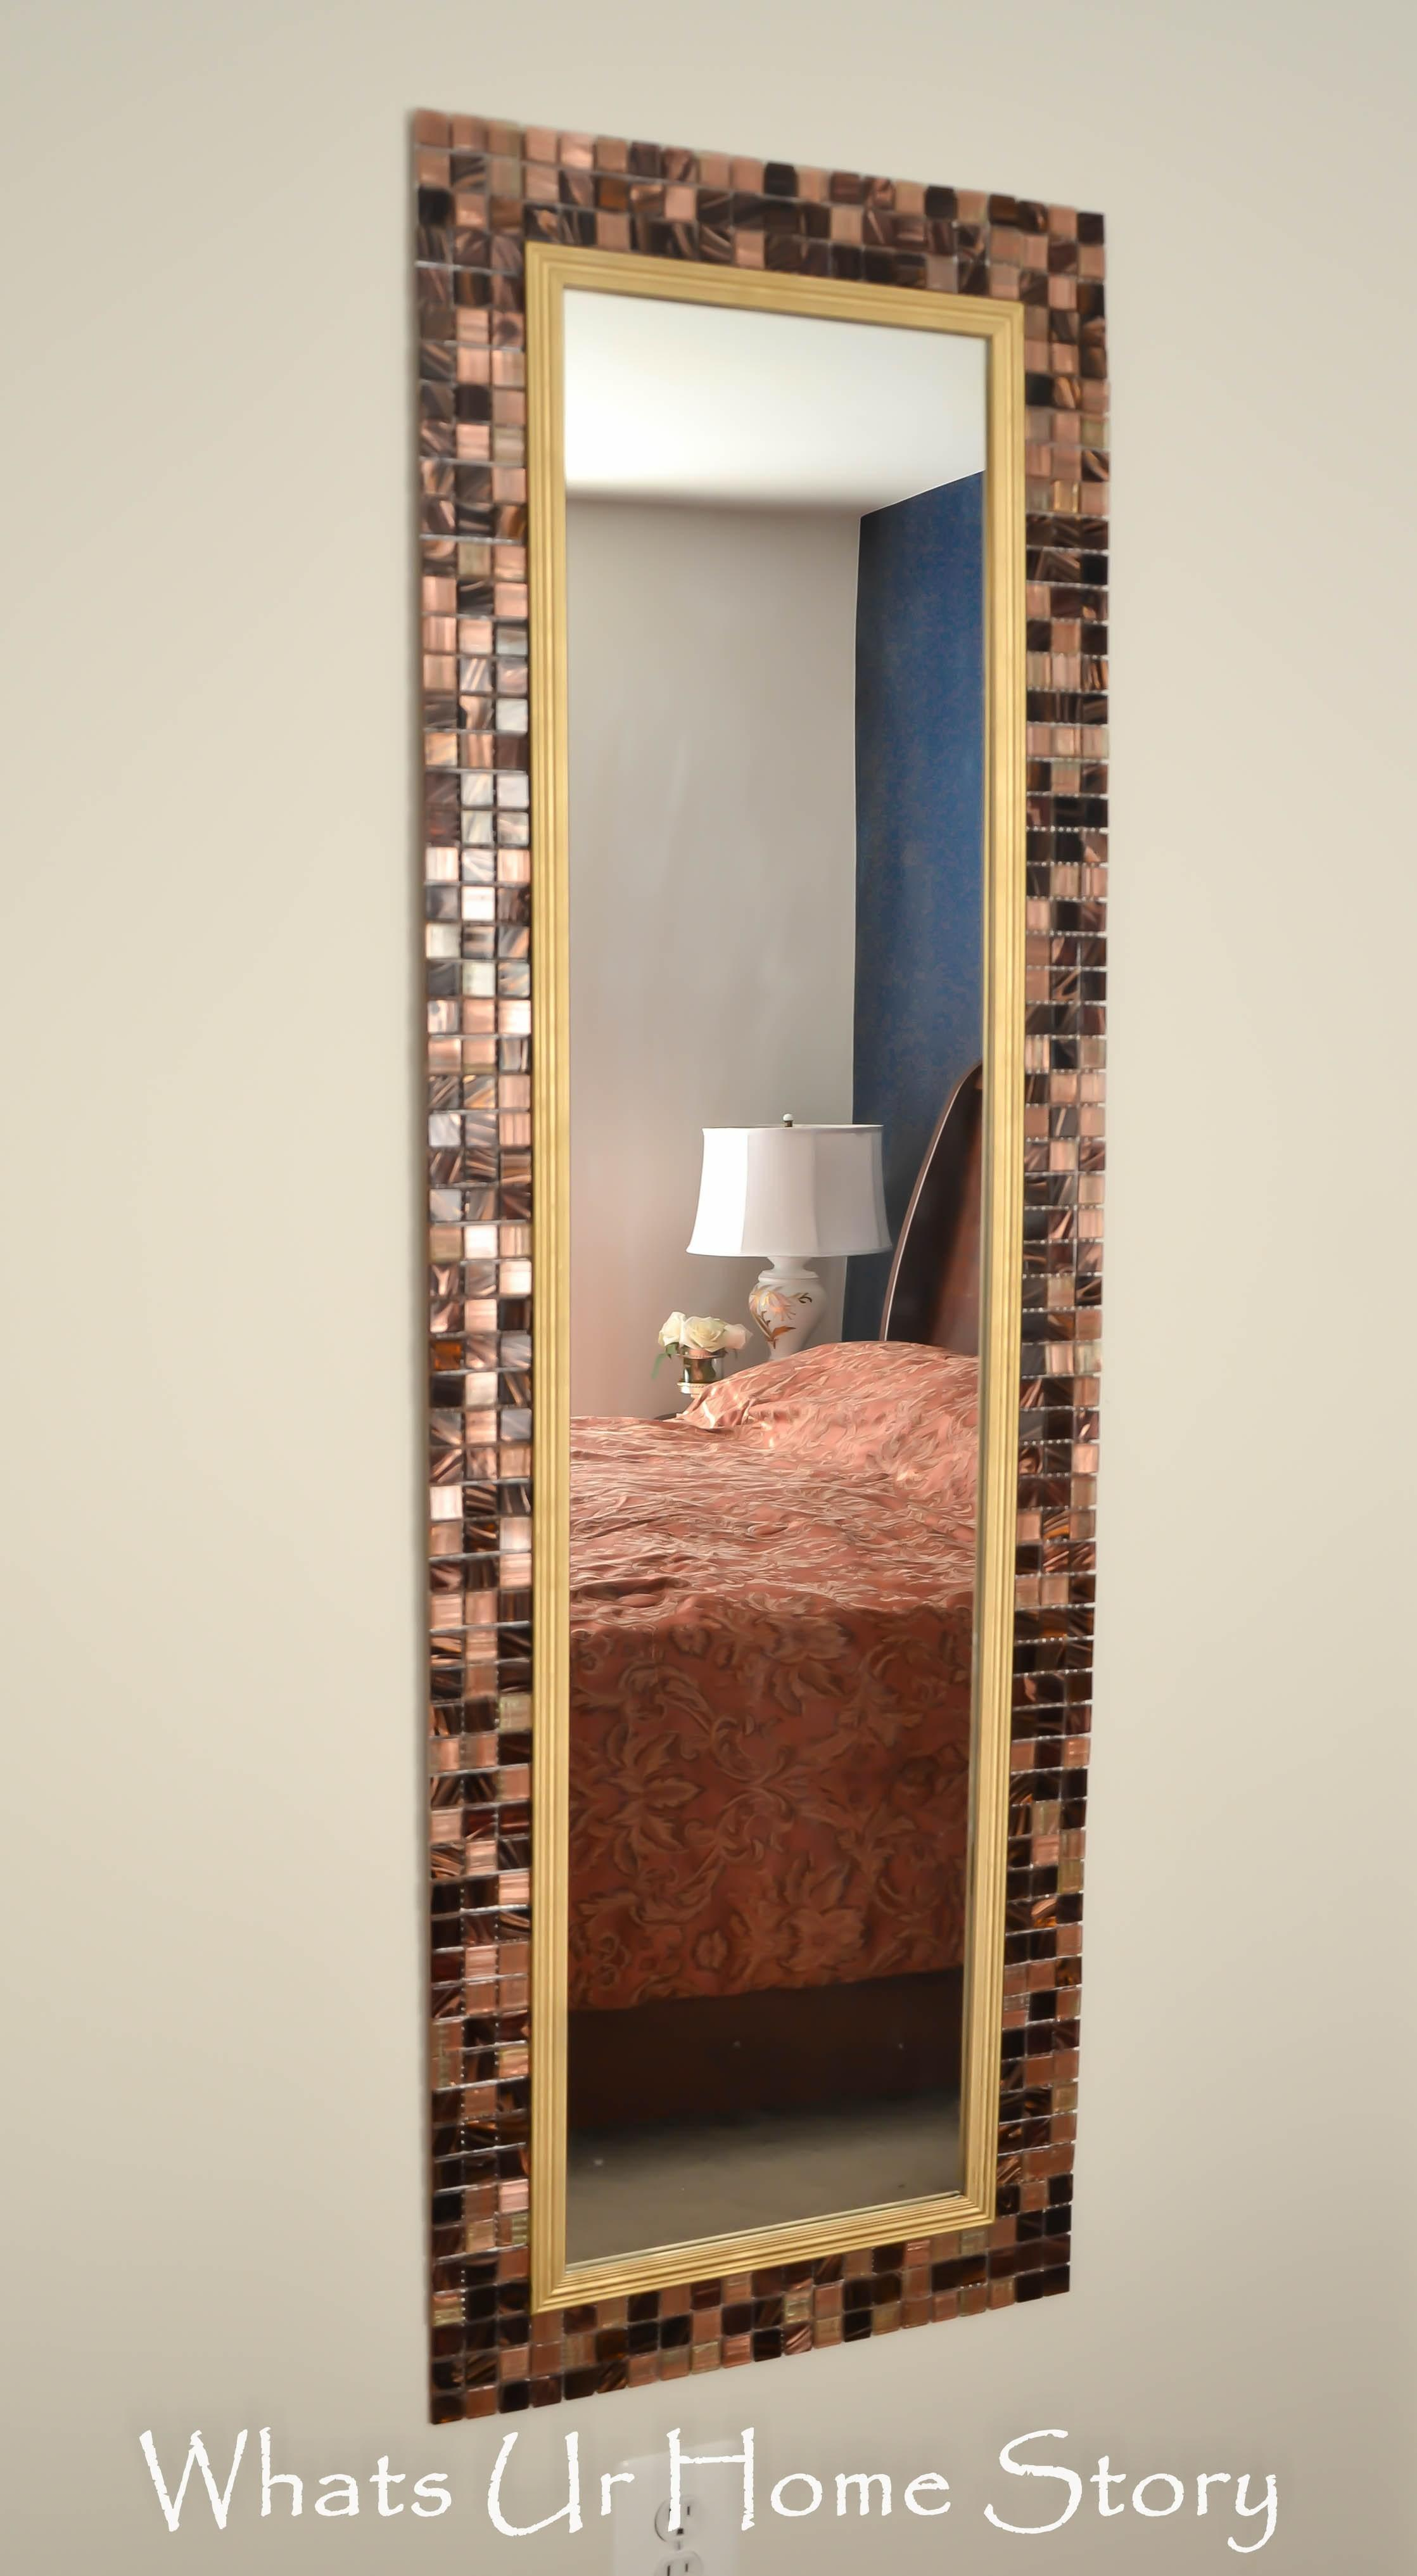 Diy Tile Mirror Whats Home Story